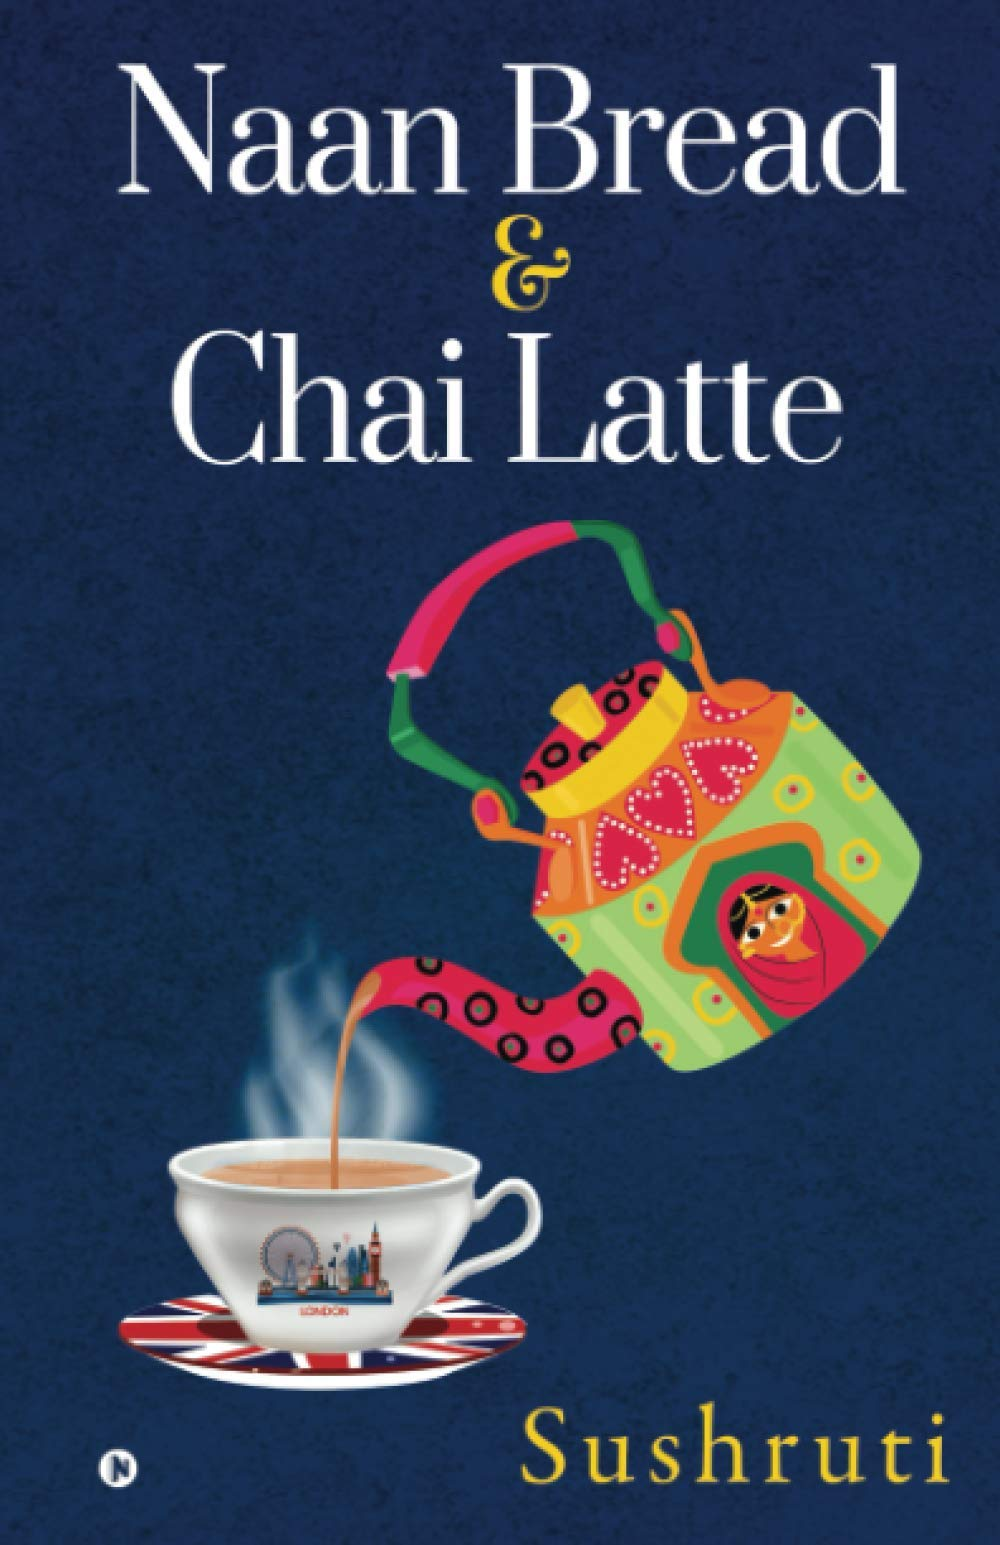 Buy Naan Bread & Chai Latte Book Online at Low Prices in India | Naan Bread & Chai Latte Reviews & Ratings - Amazon.in